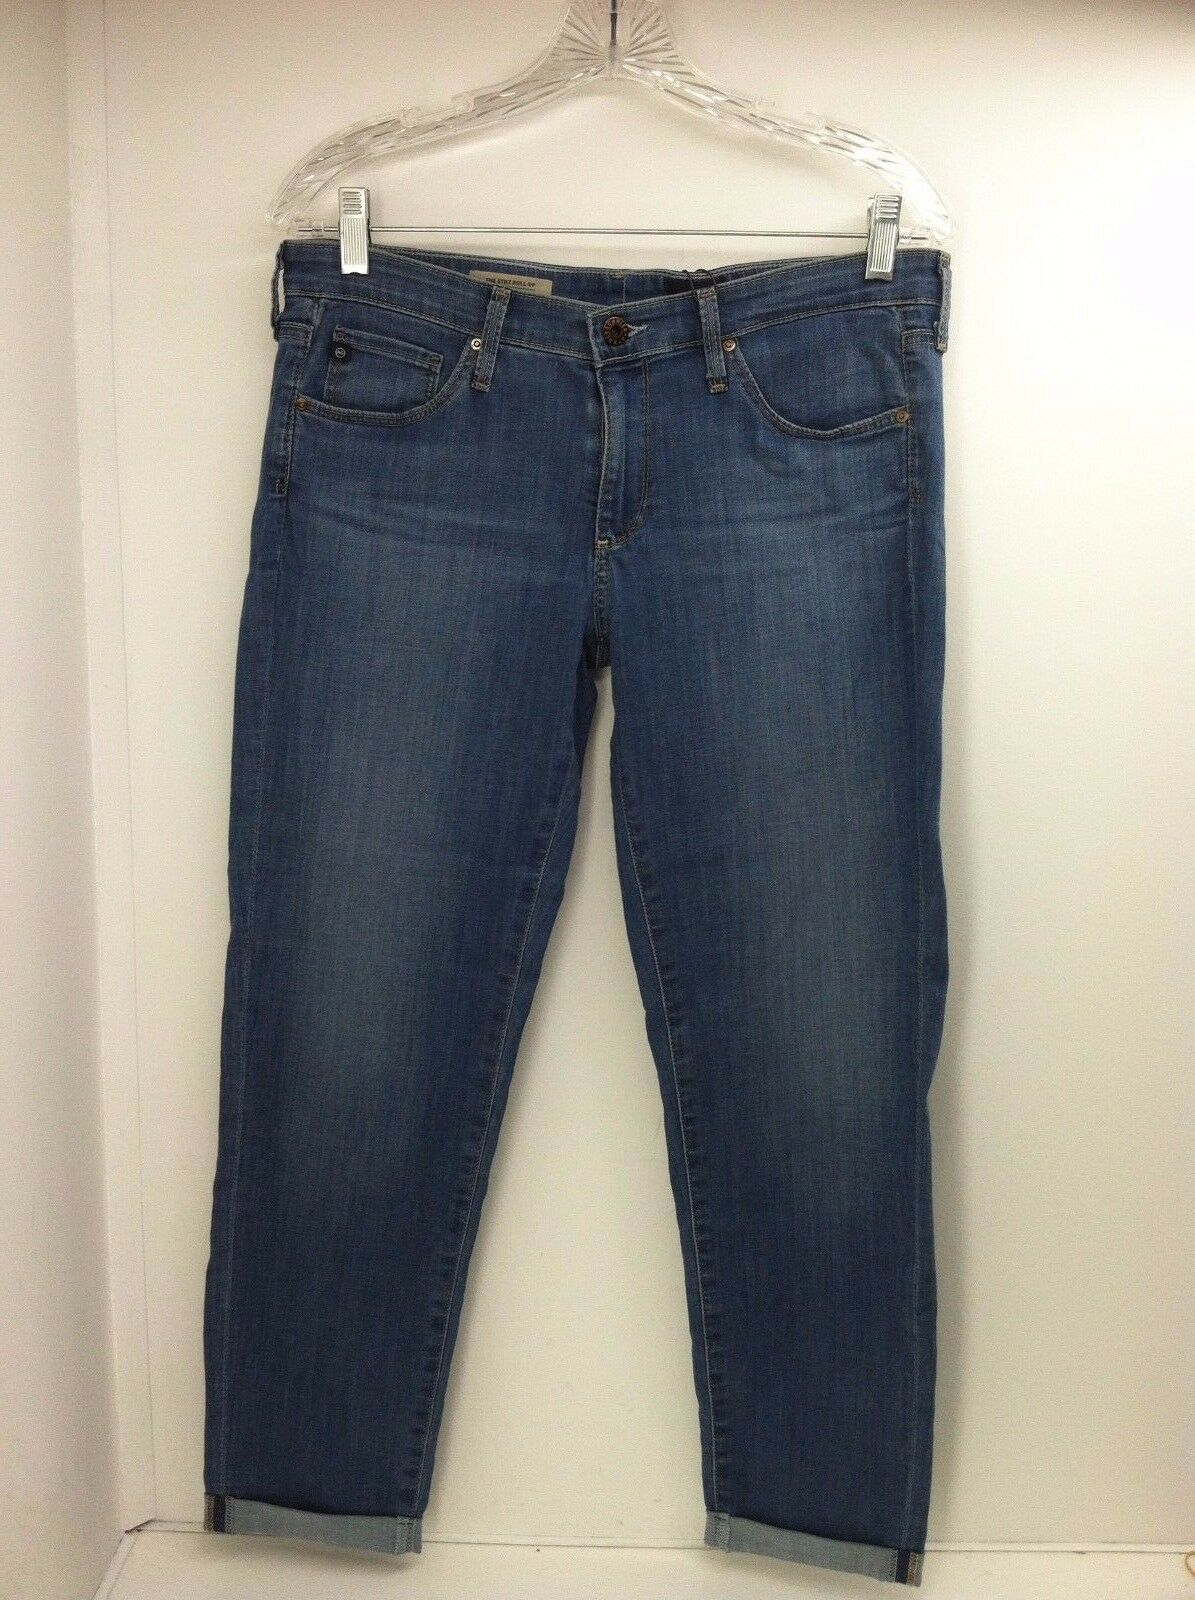 Adriano goldschmied Size 31 Jeans The Stilt Roll Up bluee Denim Style ALS1333